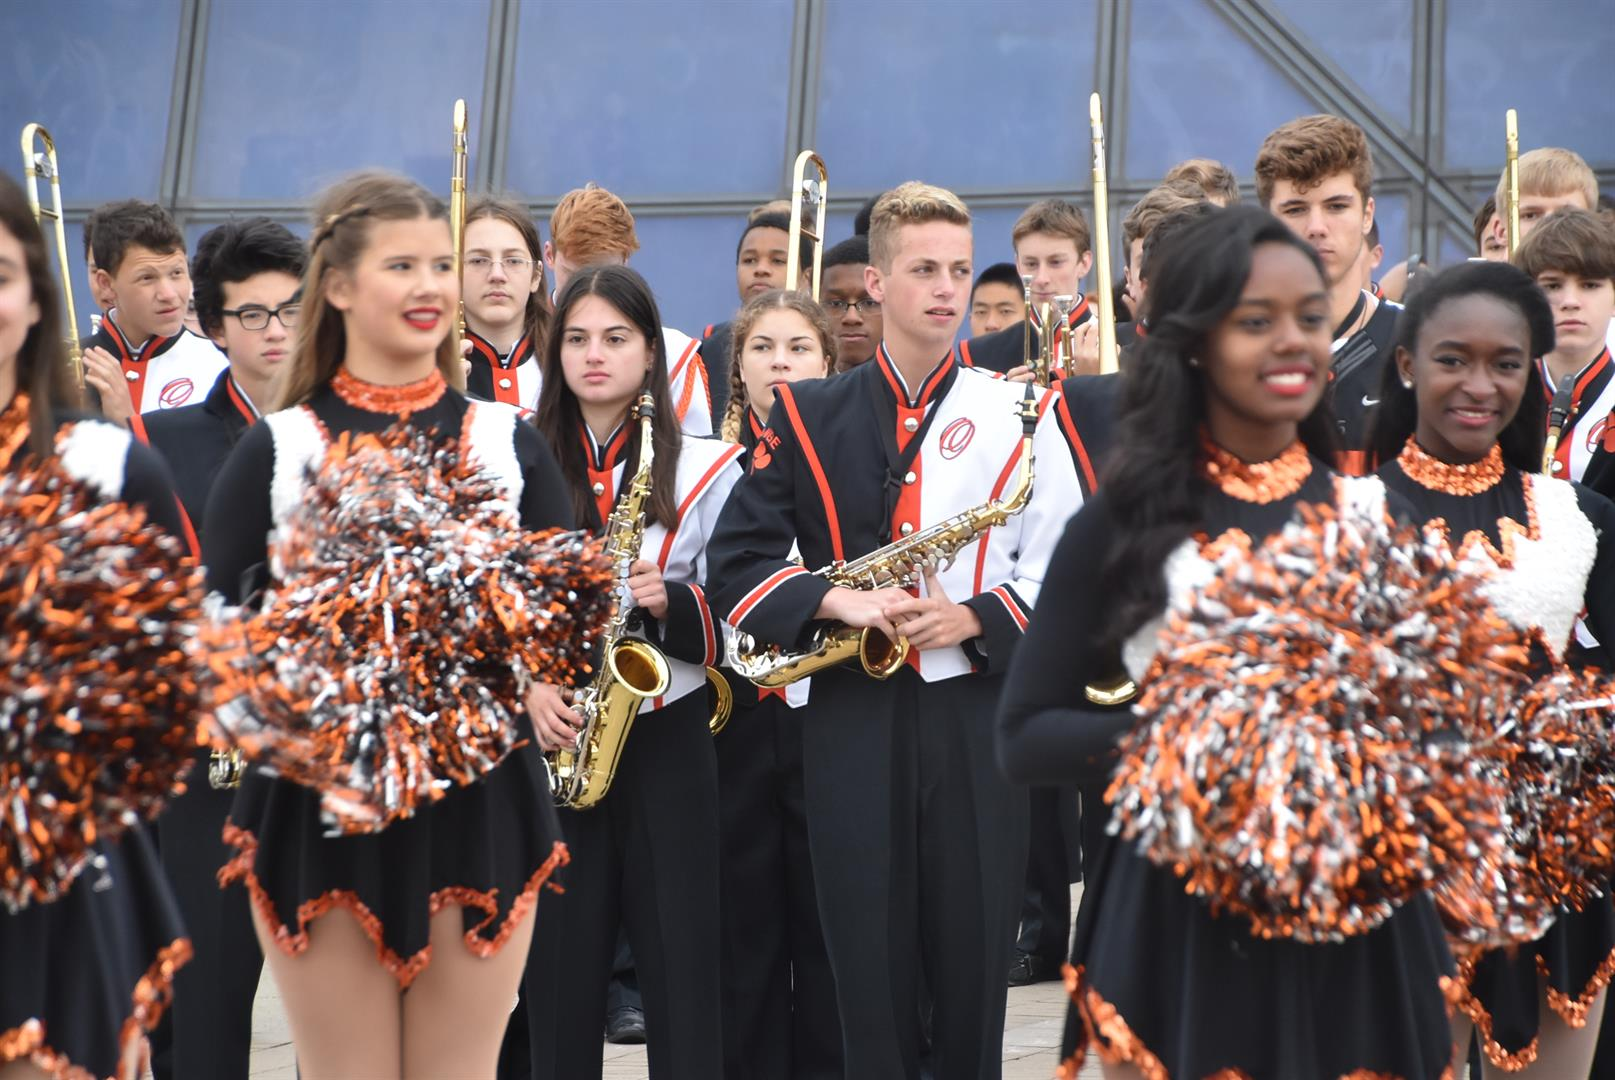 Band & Drill Team Perform at Rock Hall